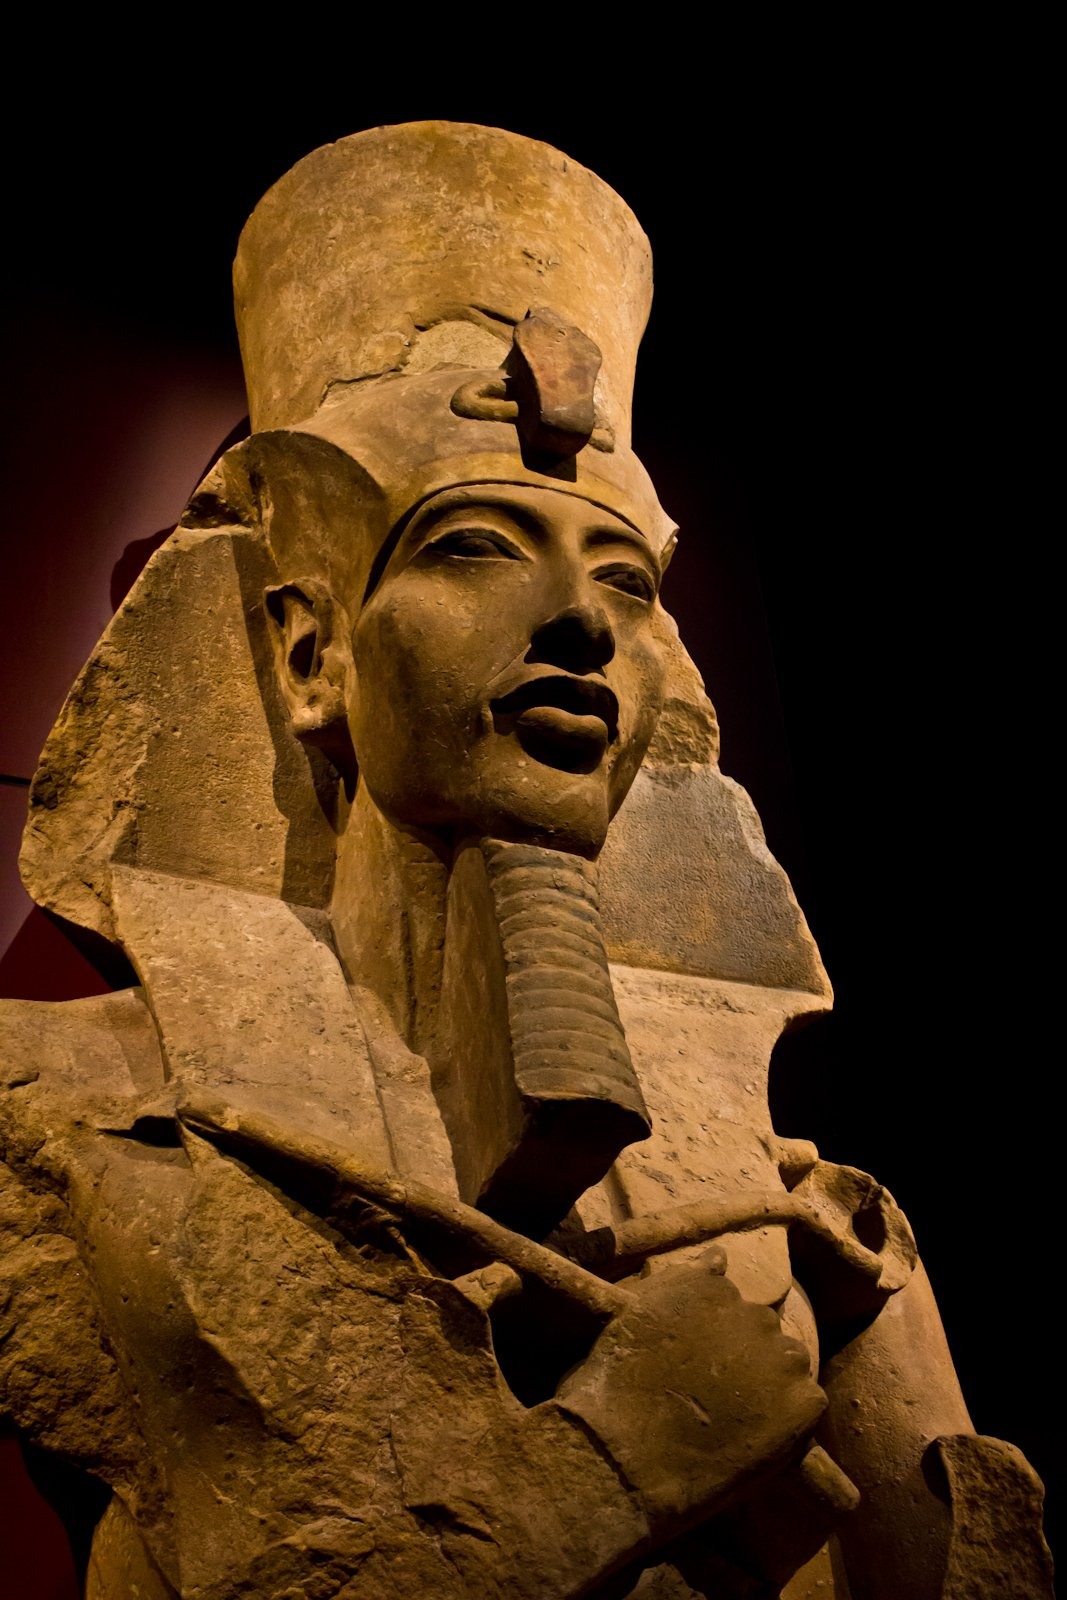 an introduction to the life and history of amenhotep iv One of, or perhaps the most curious of egypt's ancient rulers must be that of akhenaten of the 18th dynasty born with the name amenhotep iv, he not only transformed his name to akhenaten, but changed himself and the course of history.